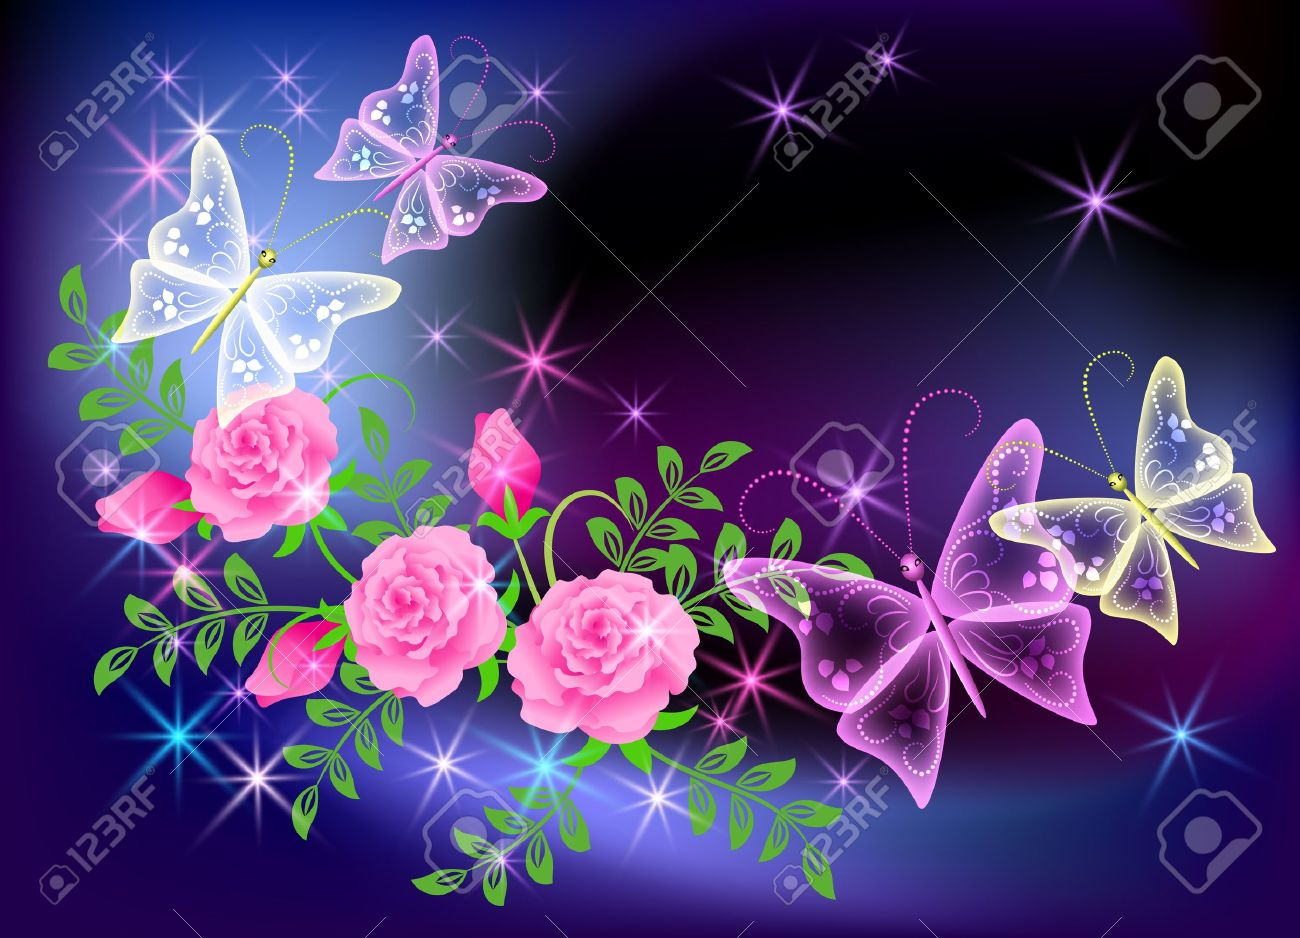 Glowing transparent flowers, stars and butterfly Stock Vector - 8776780